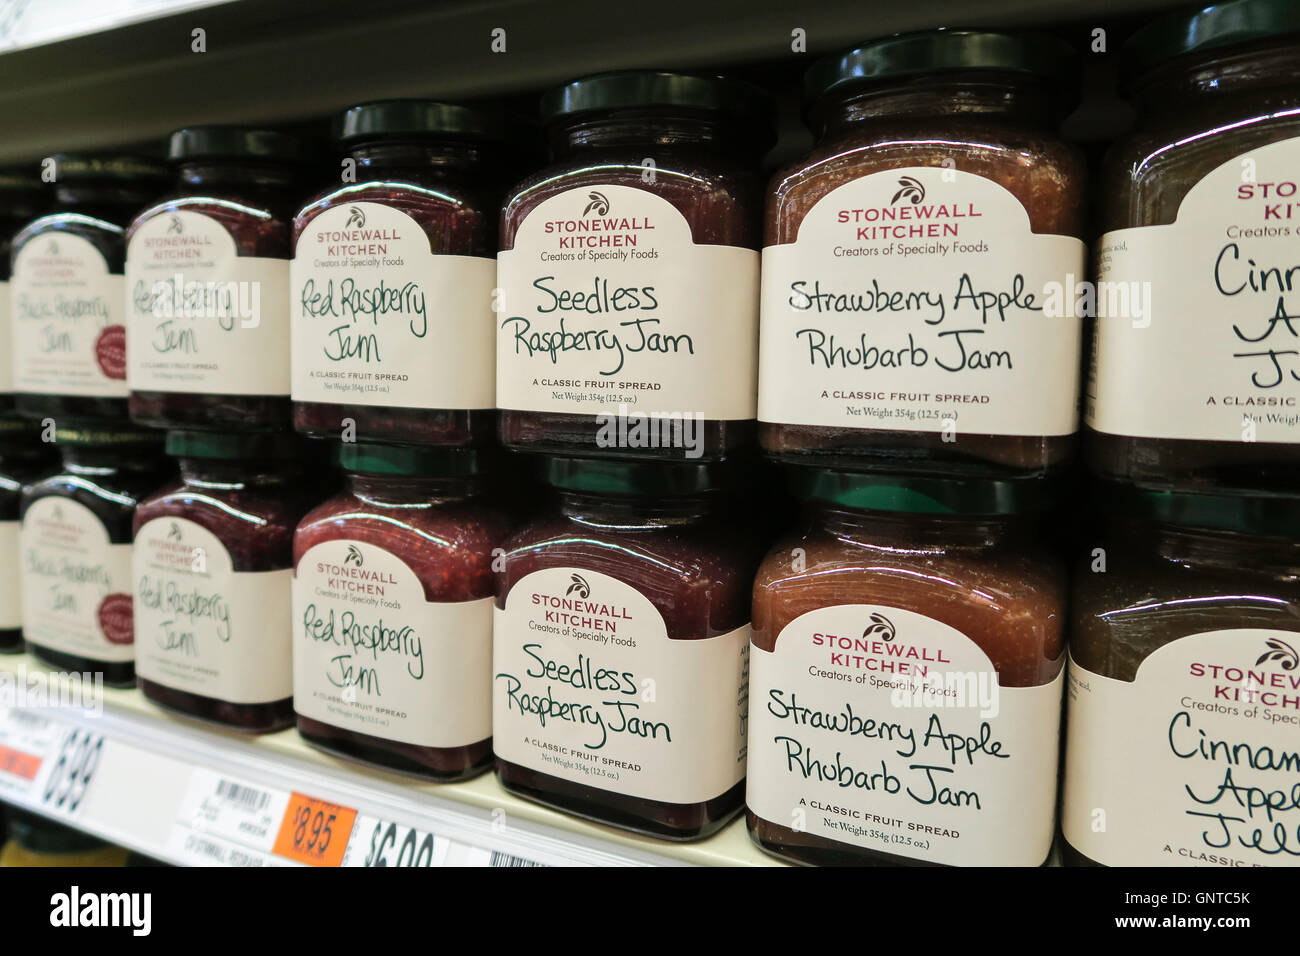 stonewall kitchen com hotel suites with jams at wegmans grocery store westwood stock massachusetts usa